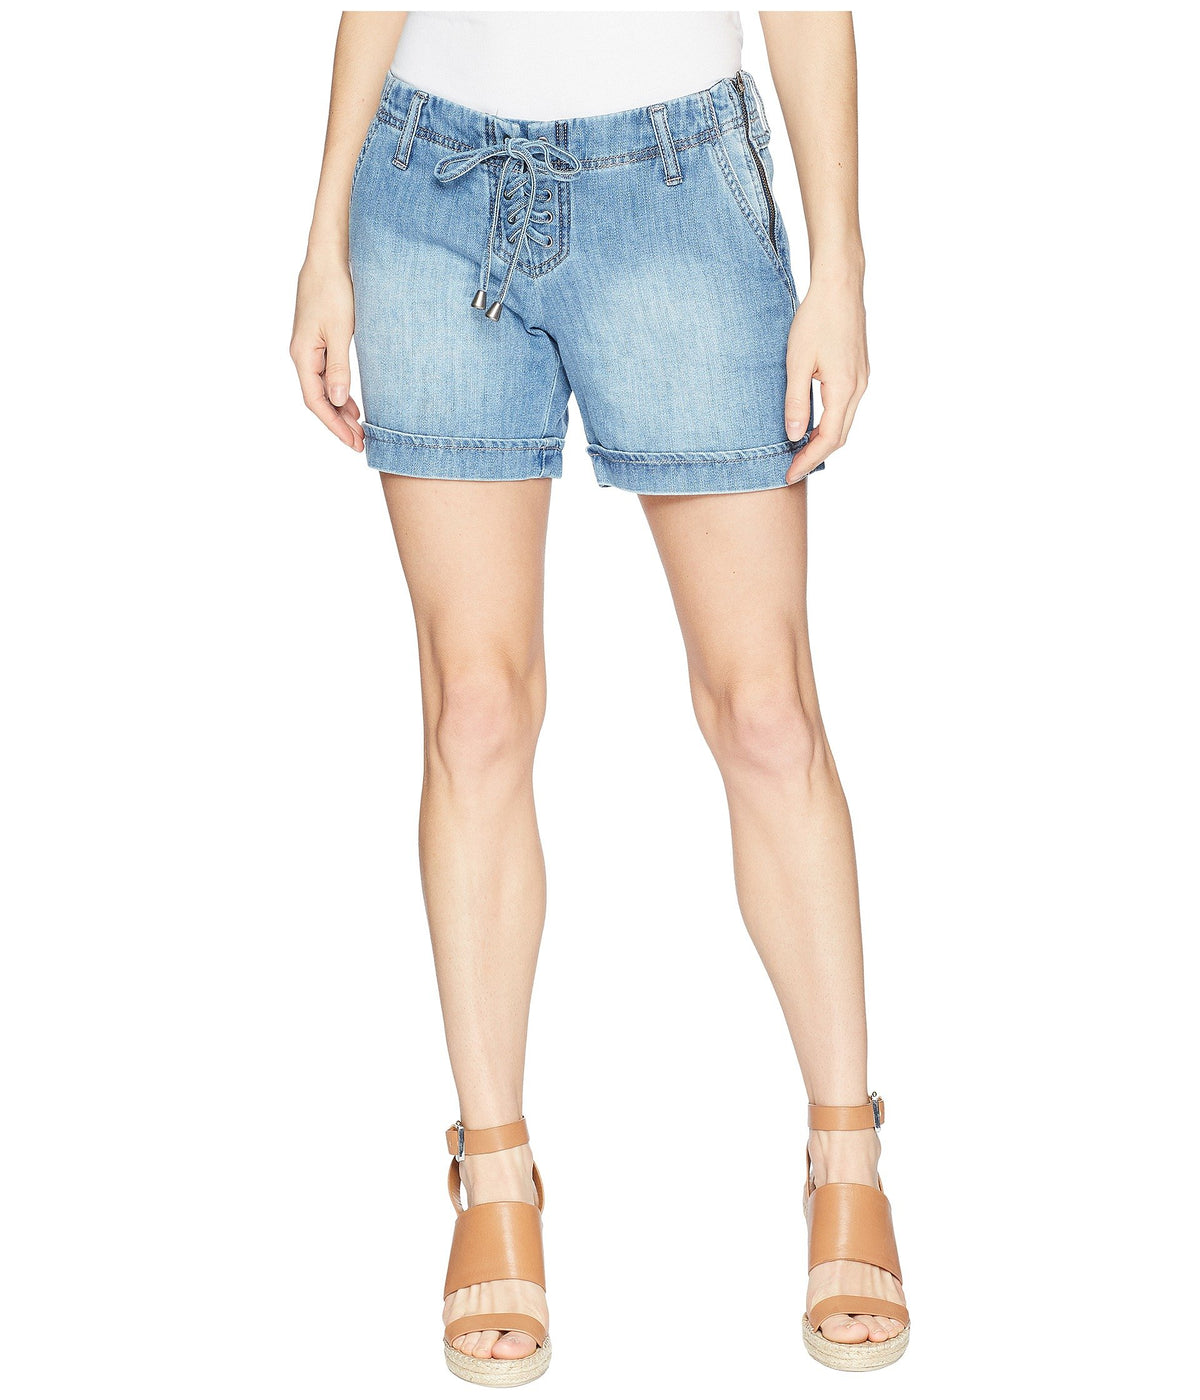 Cassidy Lace-Up Shorts in Classic Soft Rigid Denim in Beacon Handsand